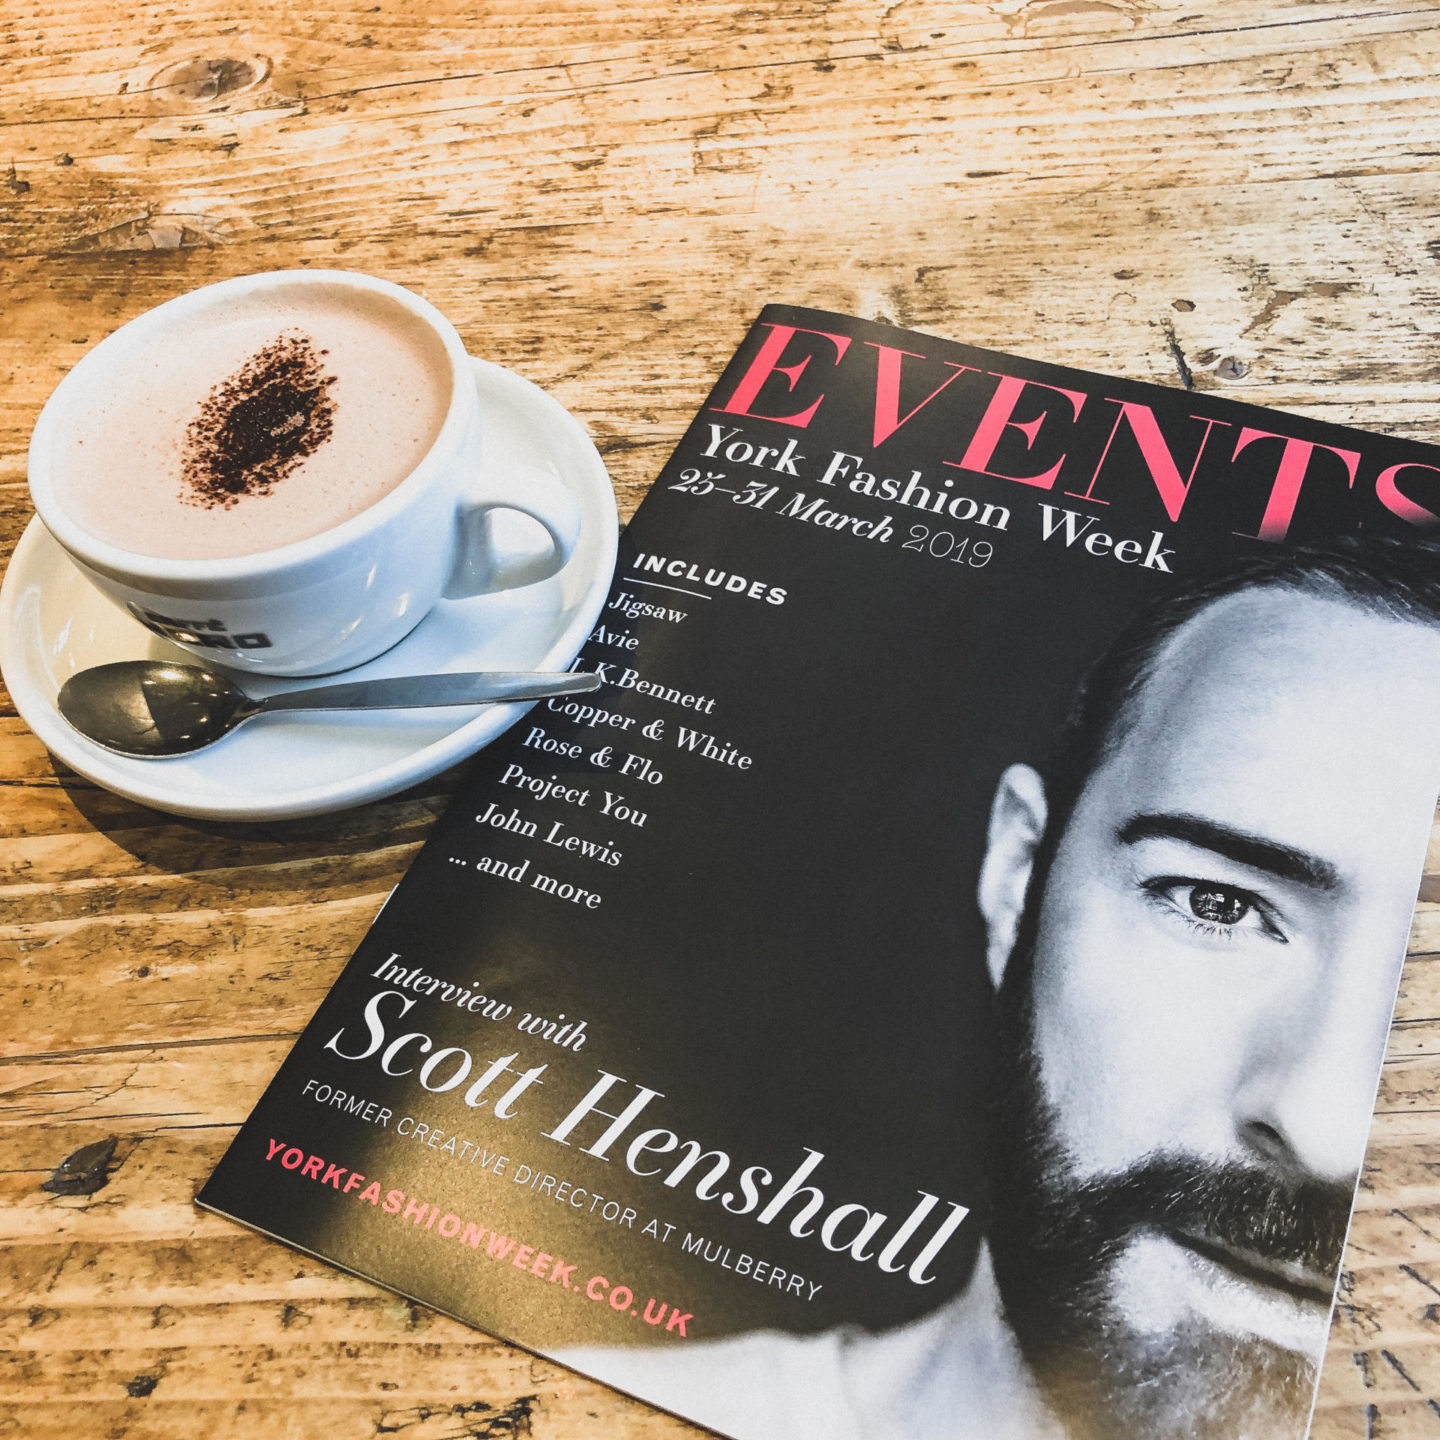 An Evening with Scott Henshall at The Ivy, York